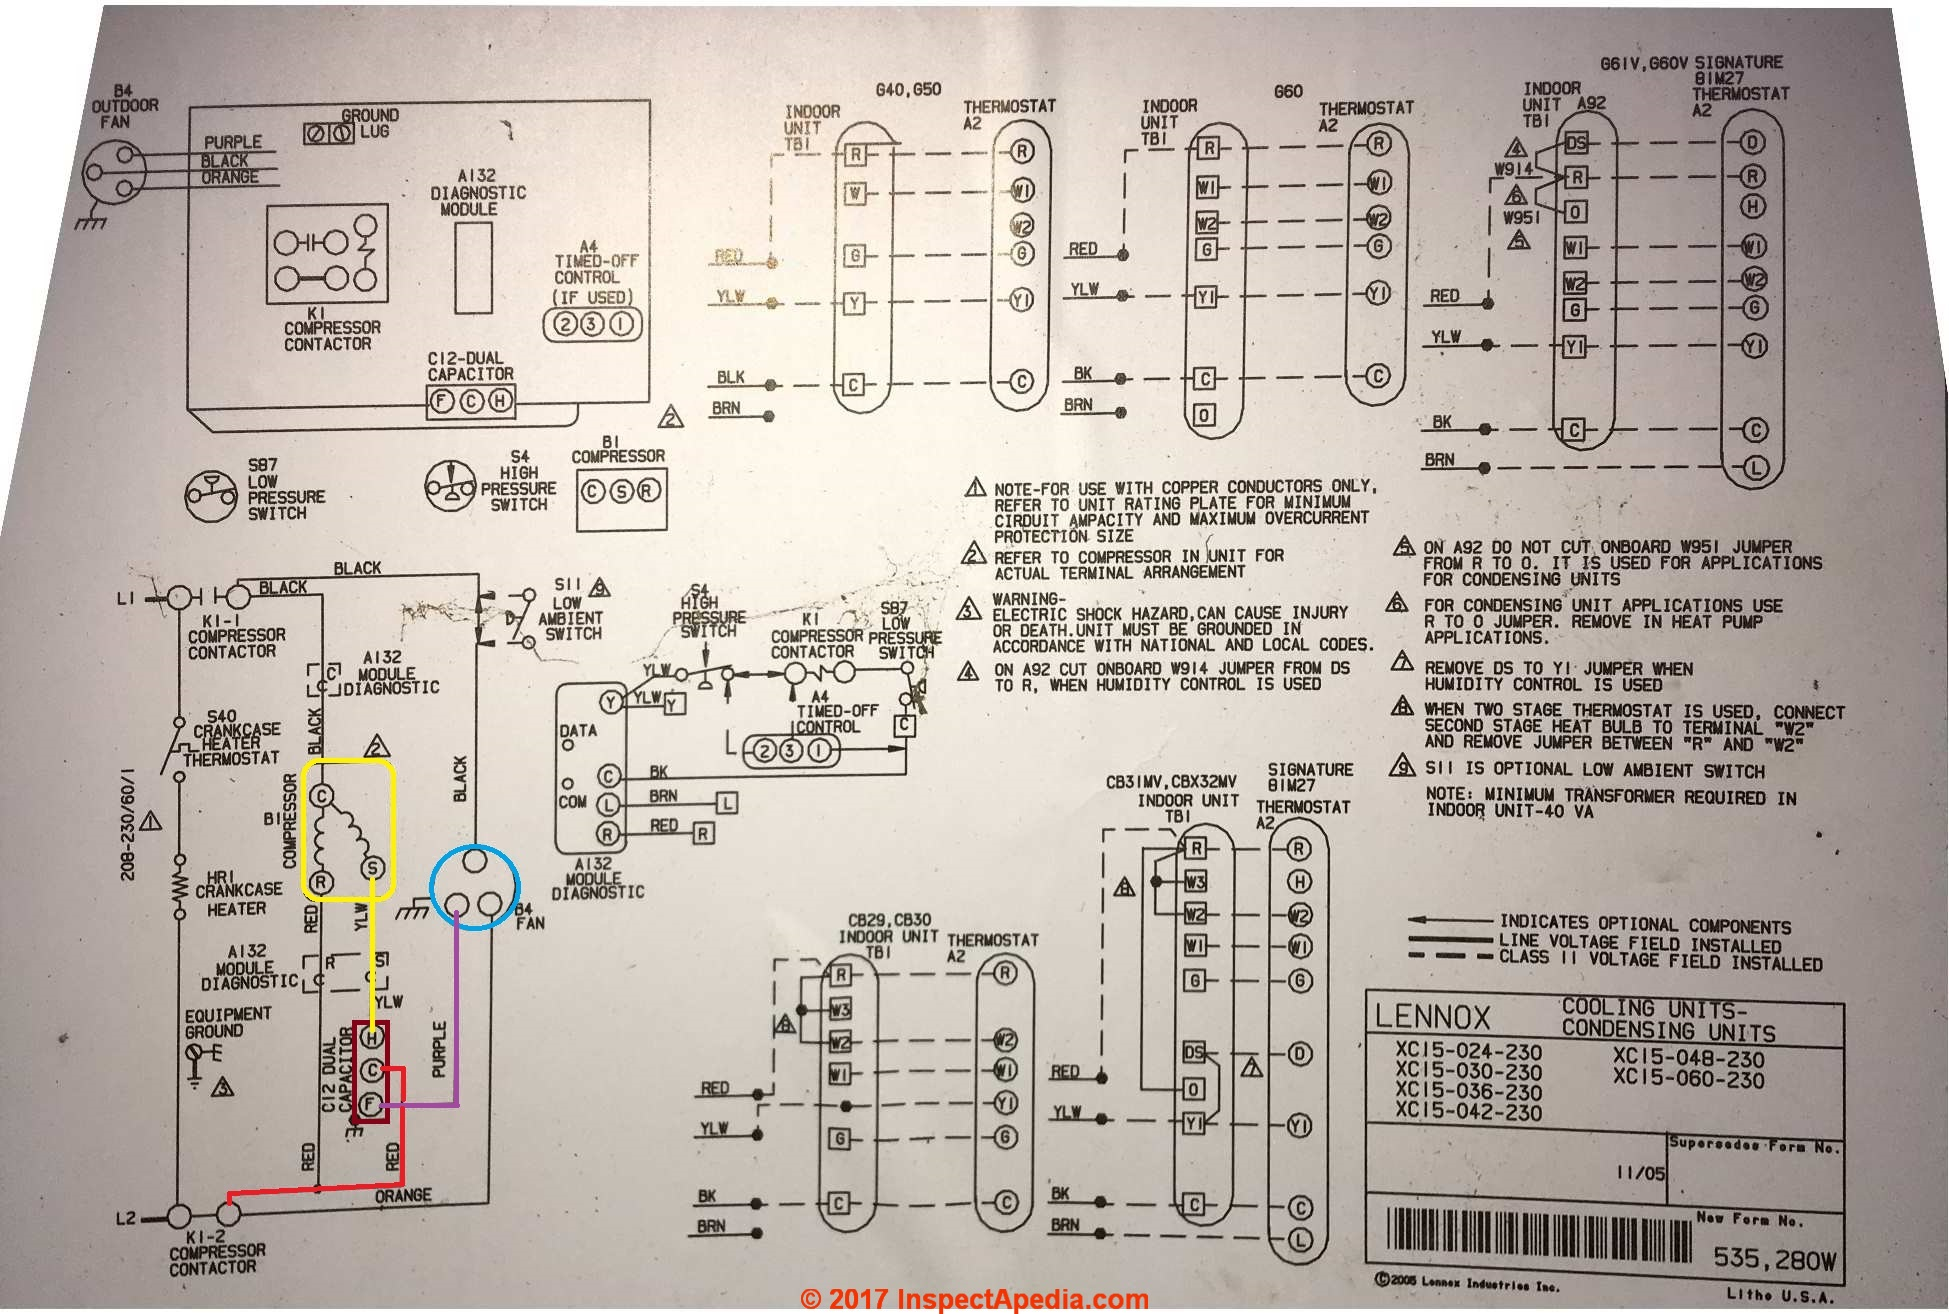 Electric Motor Starting Run Capacitor Types Installation Guide To Ajax Boiler Wiring Diagram Lennox Xc15 Condenser Unit C Showing Connections